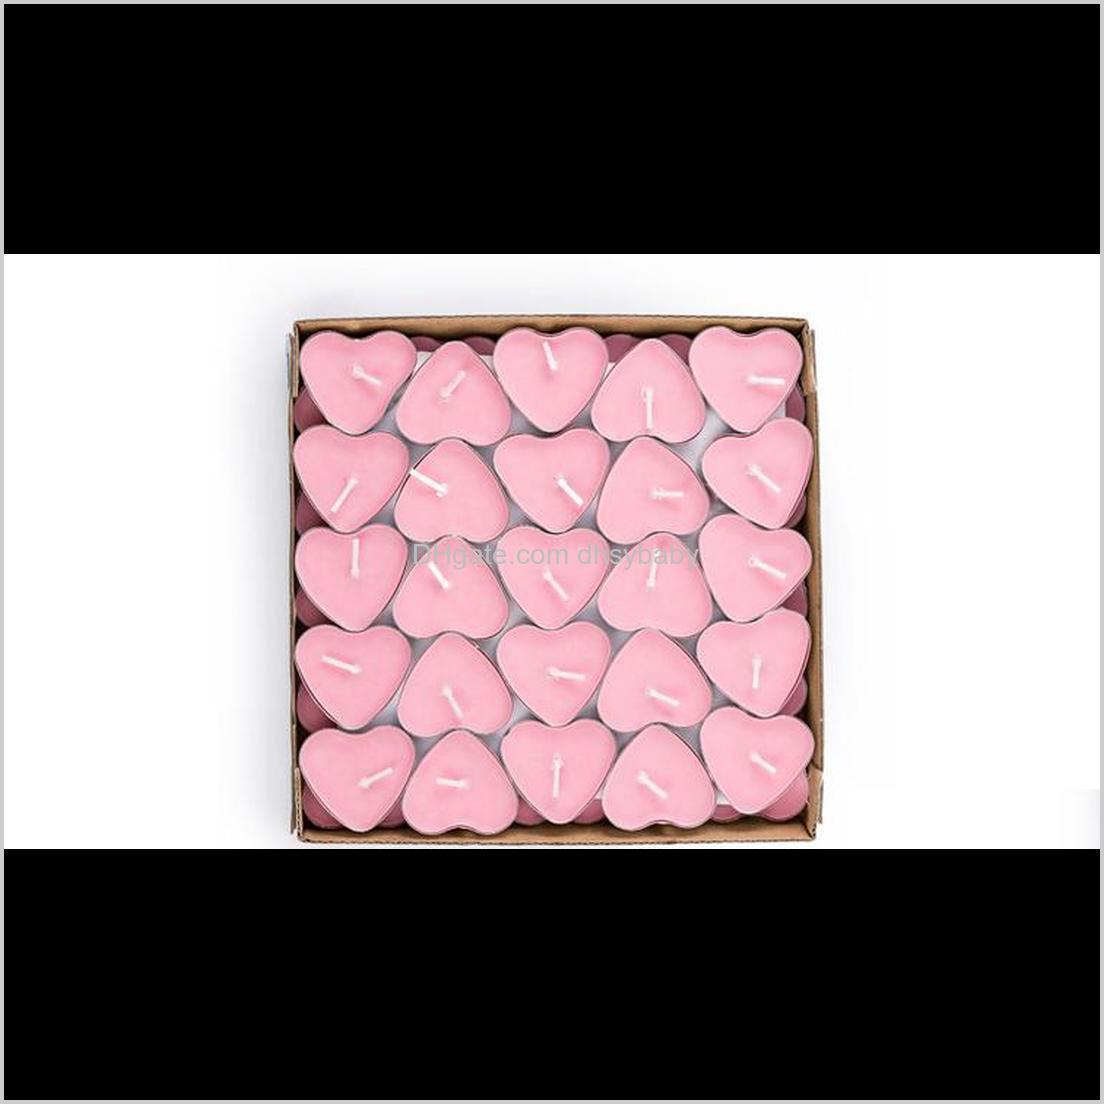 heart-shaped ghee candle 2 hours butter candles 6 colors 50pcs/set tea light candles non-smoking votive candle